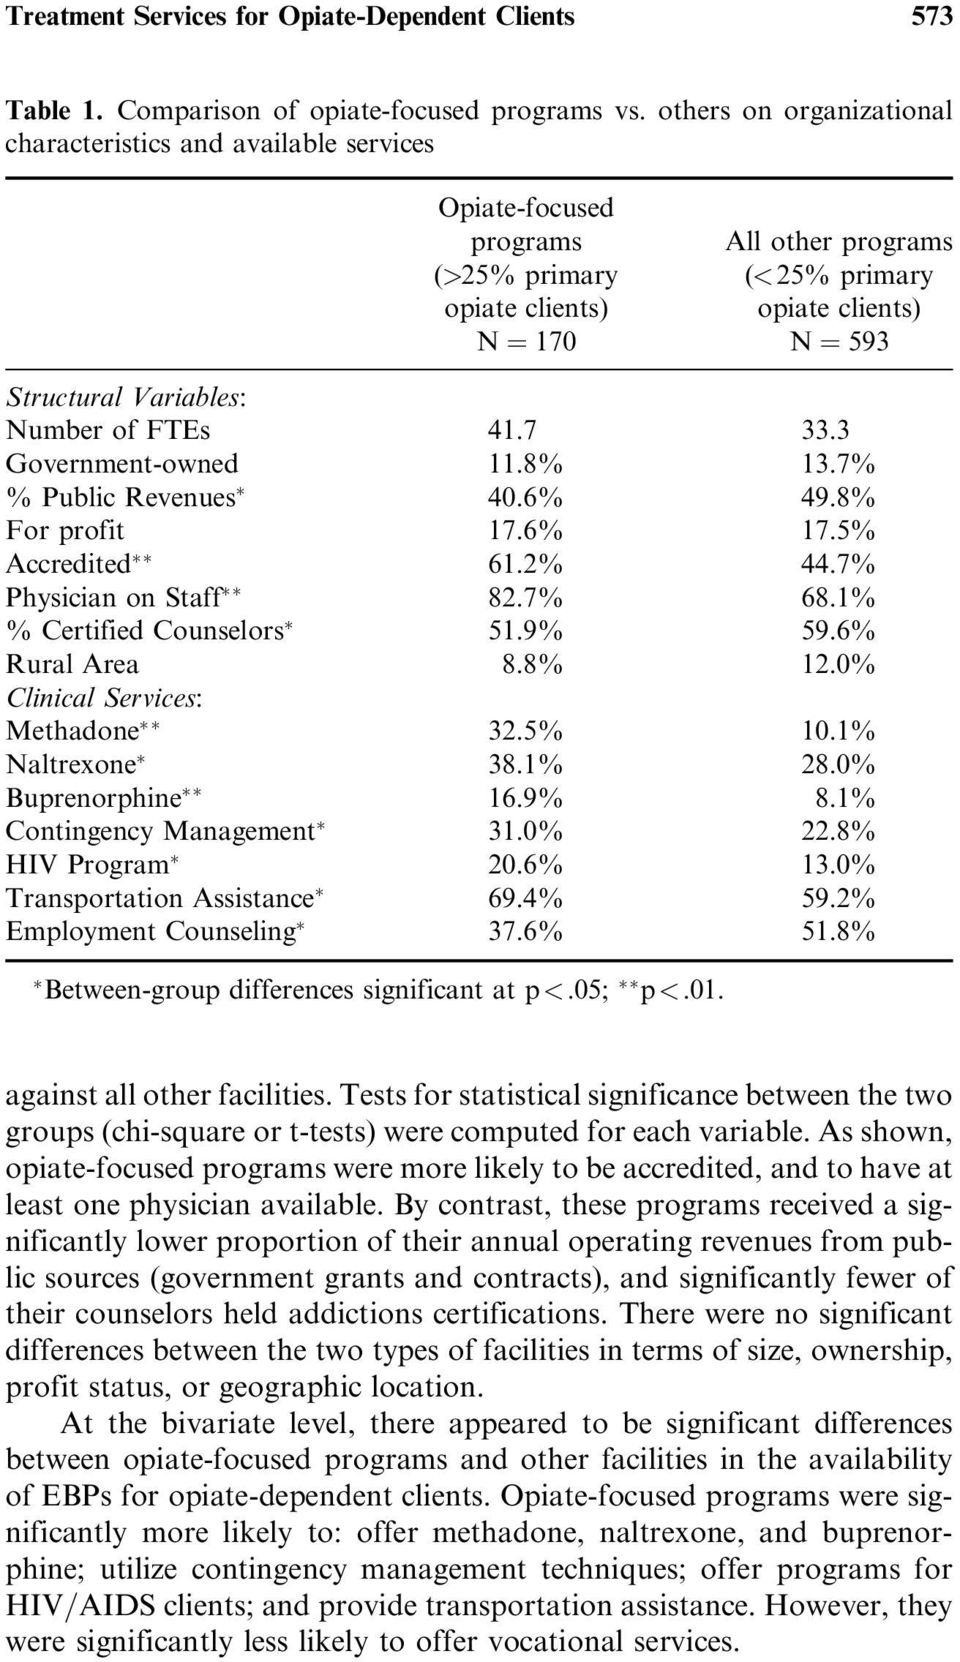 Variables: Number of FTEs 41.7 33.3 Government-owned 11.8% 13.7% % Public Revenues 40.6% 49.8% For profit 17.6% 17.5% Accredited 61.2% 44.7% Physician on Staff 82.7% 68.1% % Certified Counselors 51.